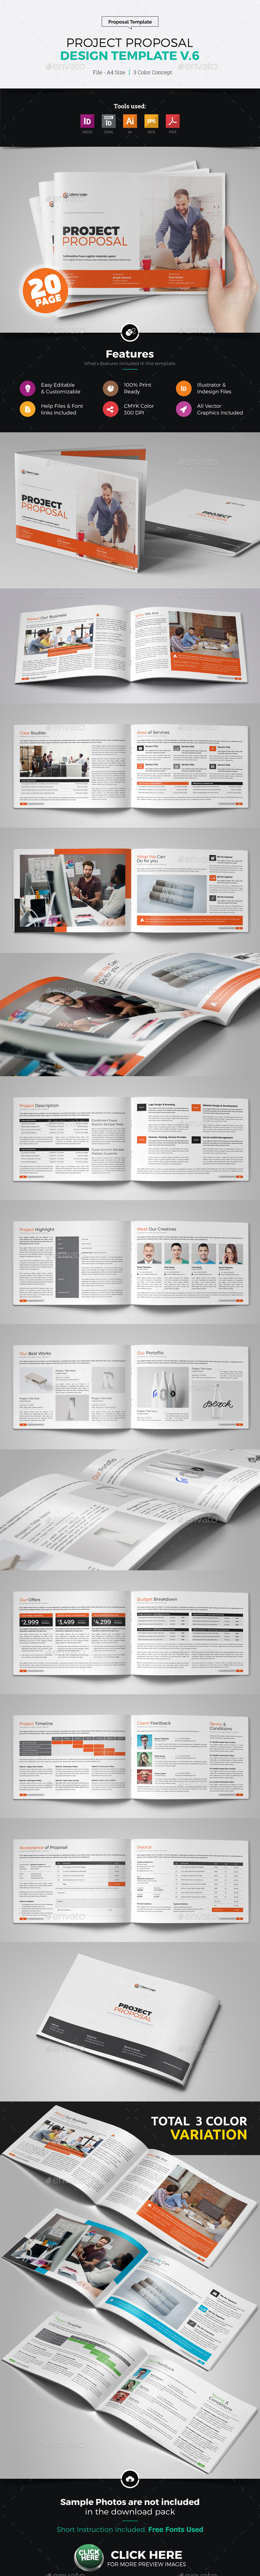 Project Business Proposal Design v6 - Proposals & Invoices Stationery